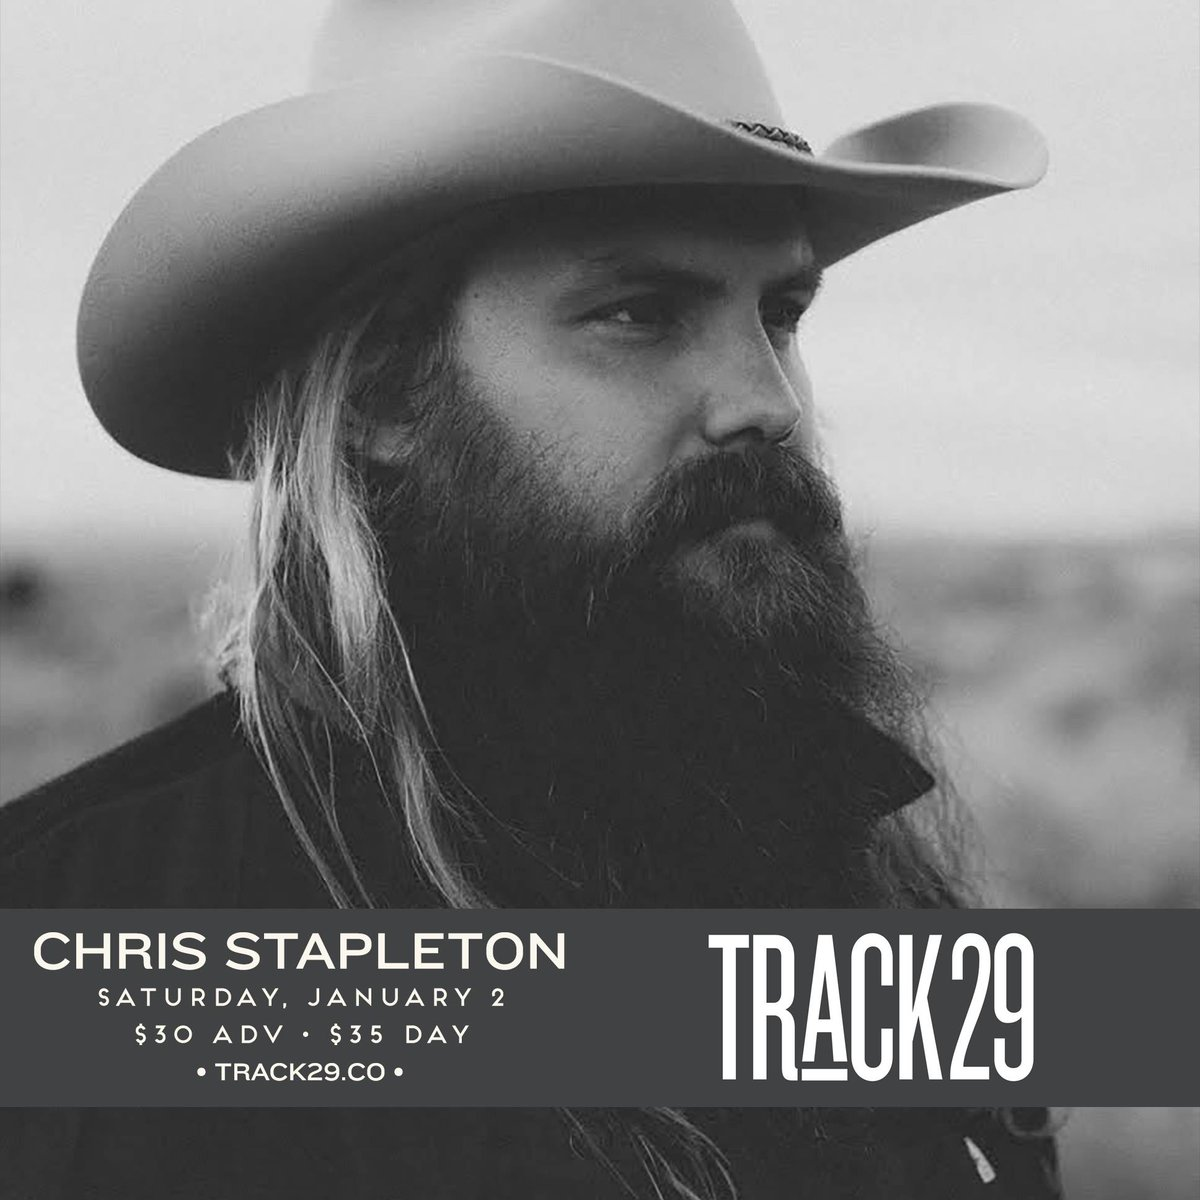 Just announced! @ChrisStapleton is coming to  Jan 2nd 18+ $30/$35 ON SALE Nov 20th 10am https://t.co/WoczrME0OW #cha https://t.co/VKEu6G09Yk